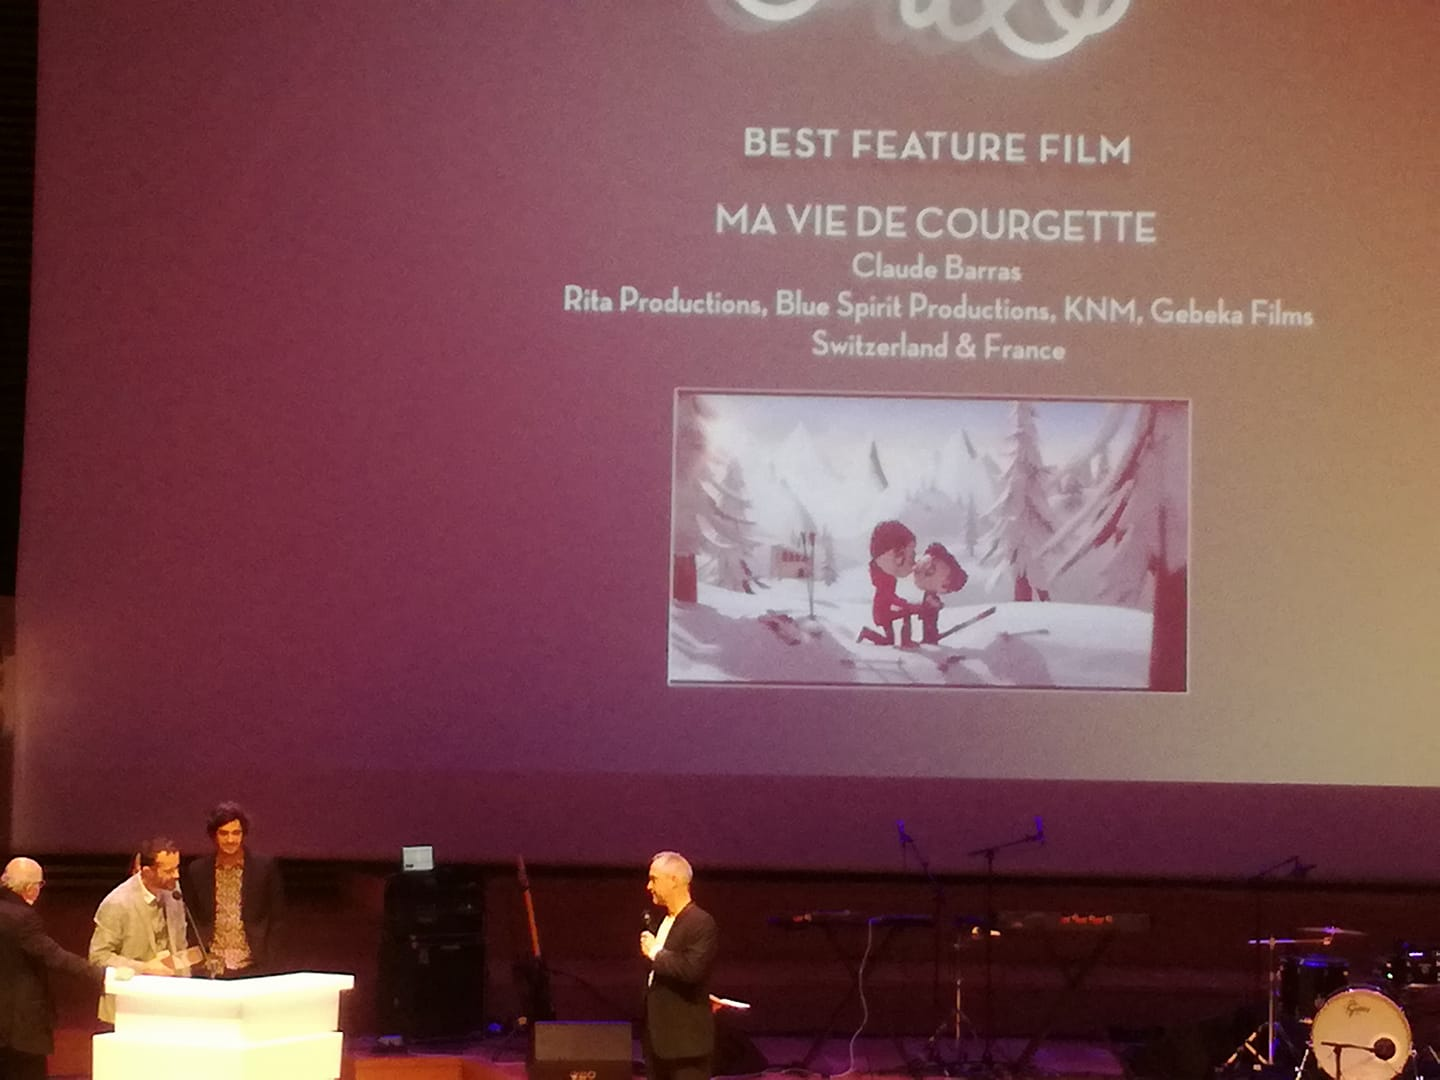 'My Life as a Zucchini', 'The Red Turtle' Win 2017 Emile Awards